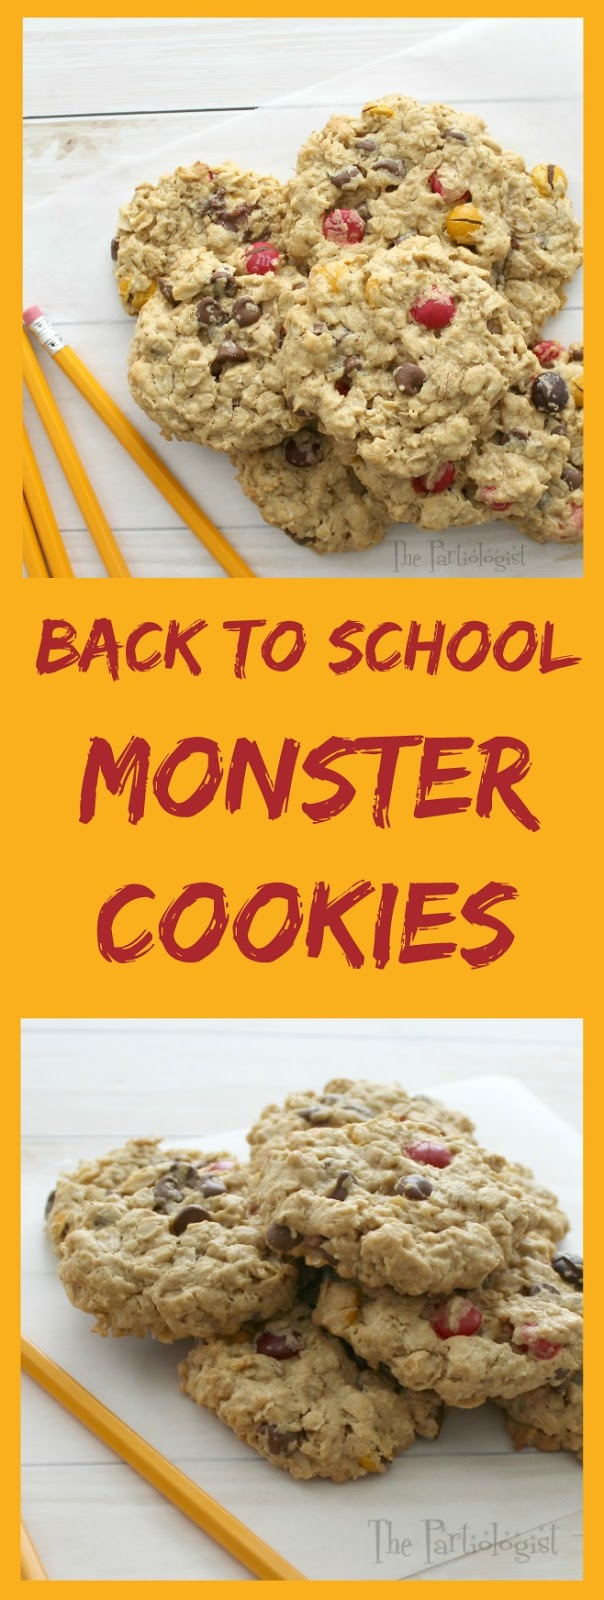 The Partiologist: Back to School Monster Cookies!